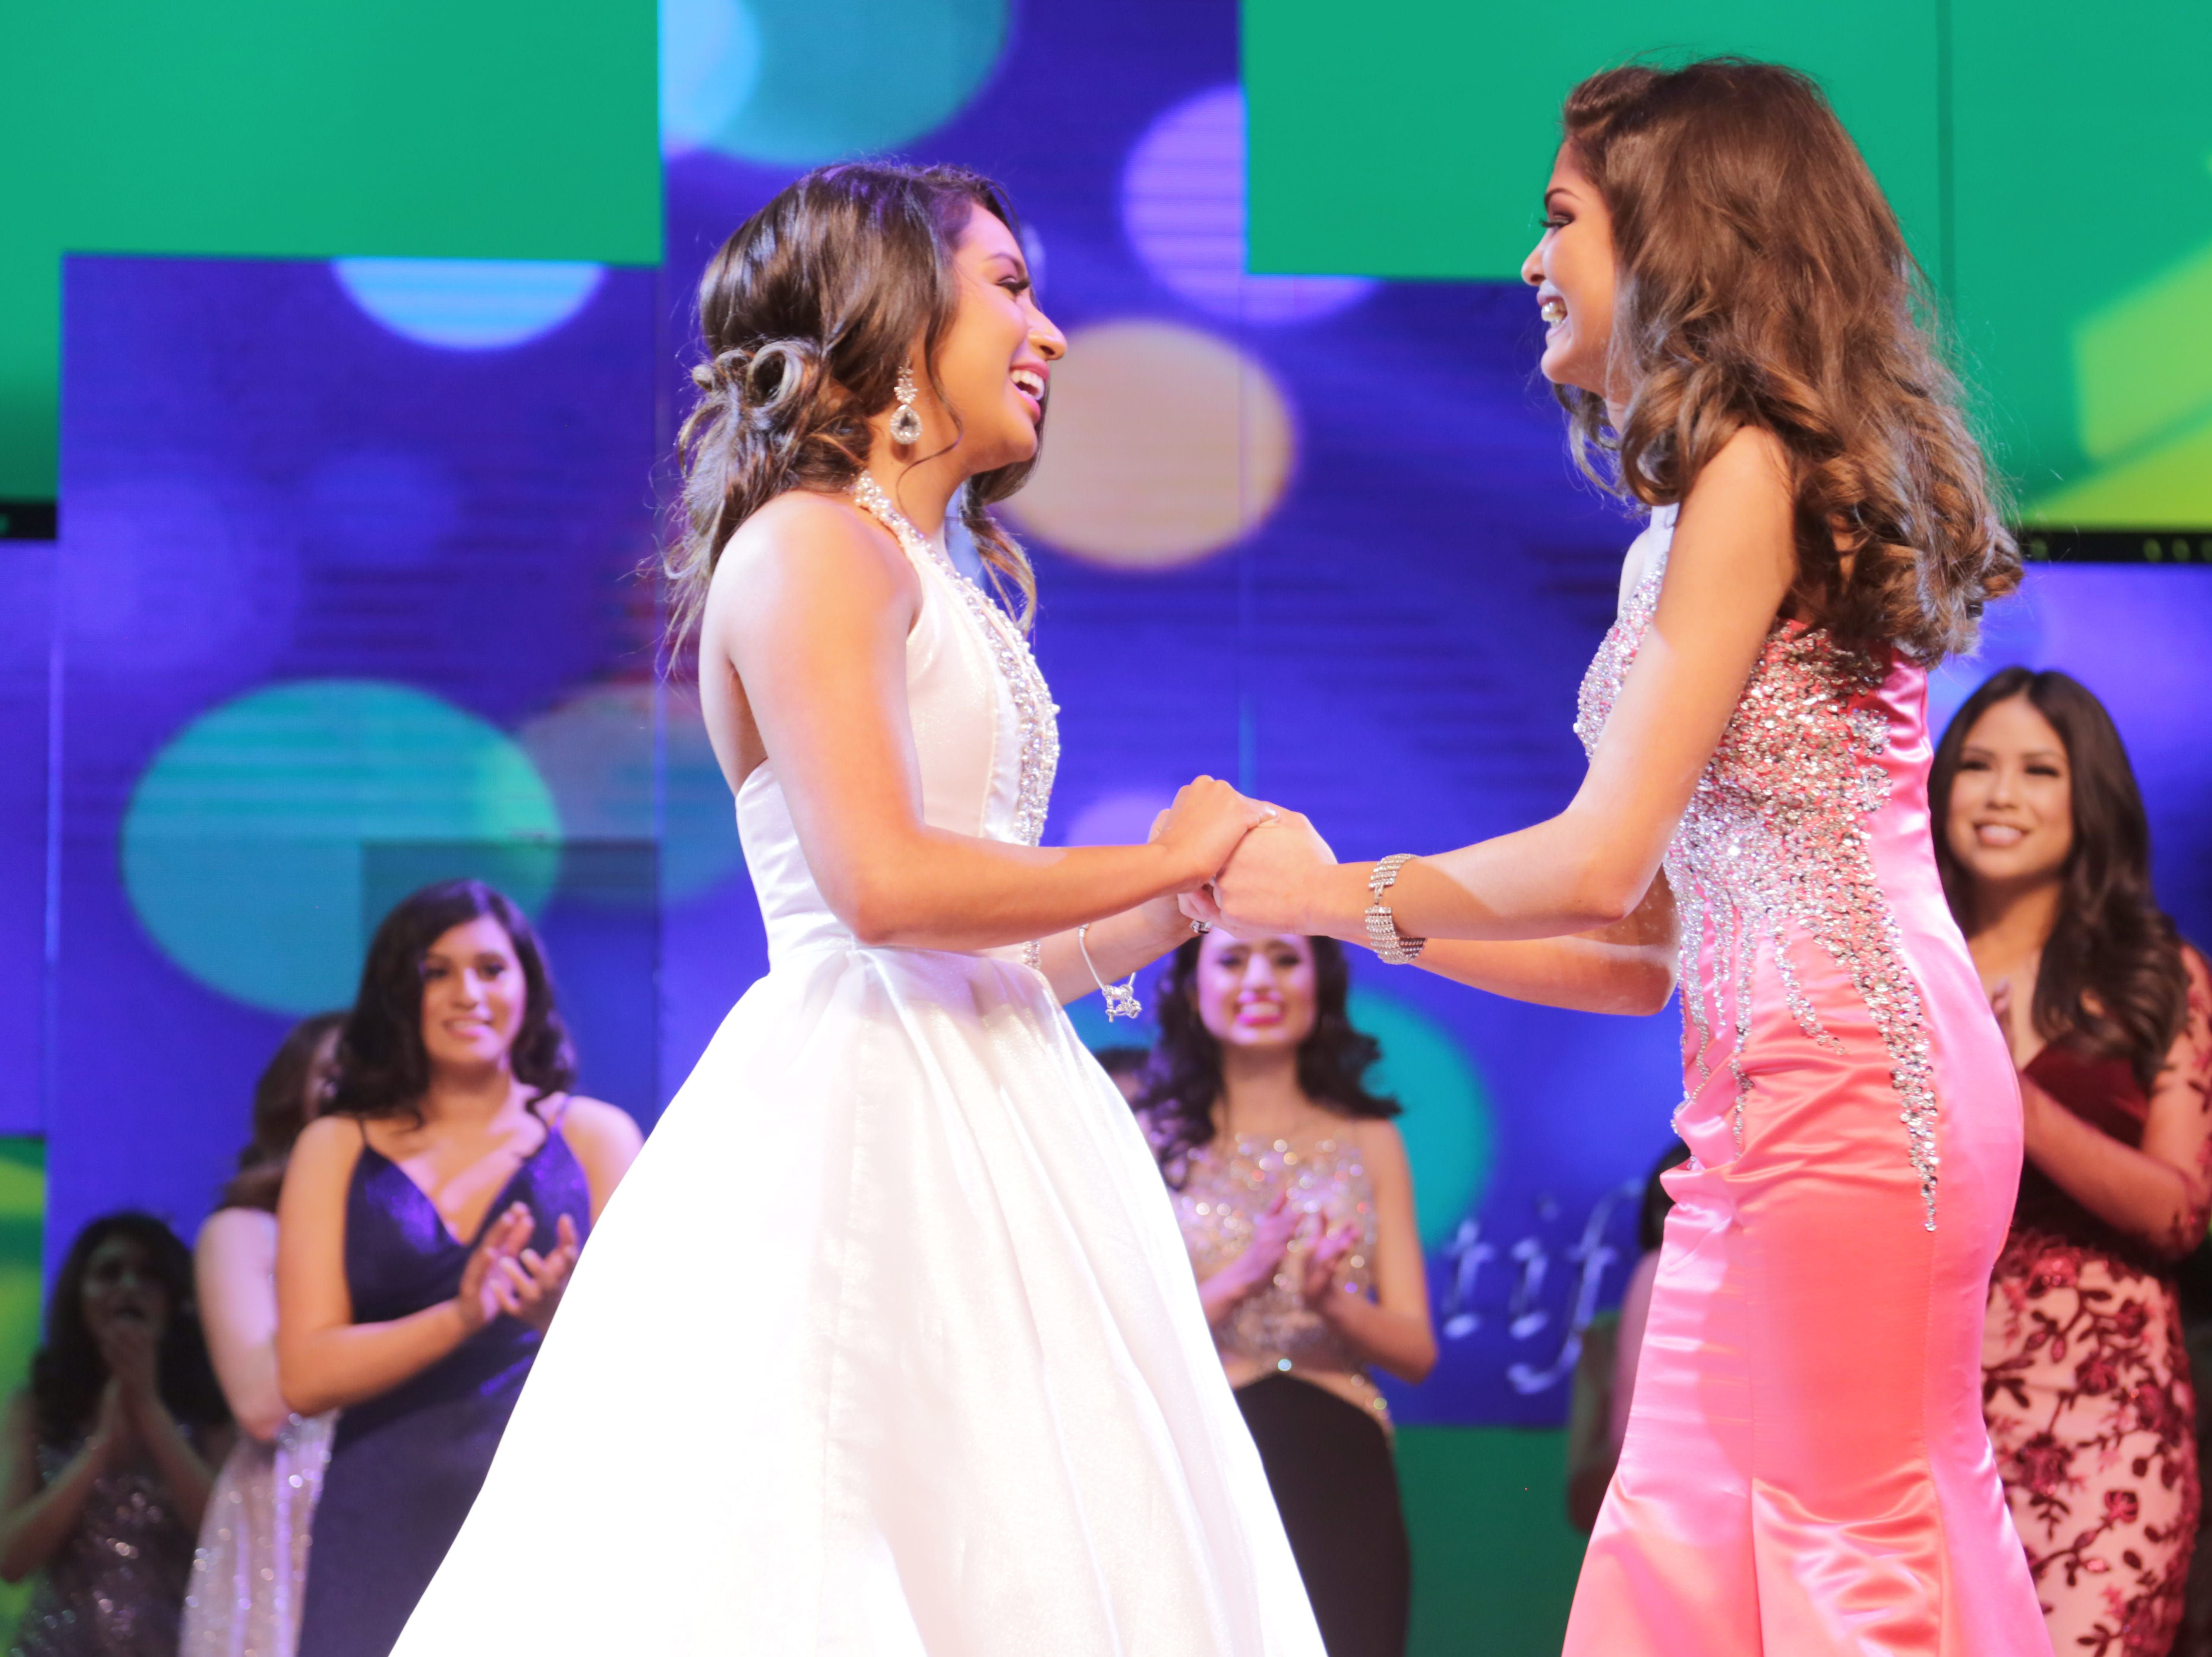 Miss New Mexico Teen USA 2019 first runner up Abigail Velez holds hands with Miss New Mexico Teen USA 2019 winner Angela Nanez, right, during the crowning announcement.